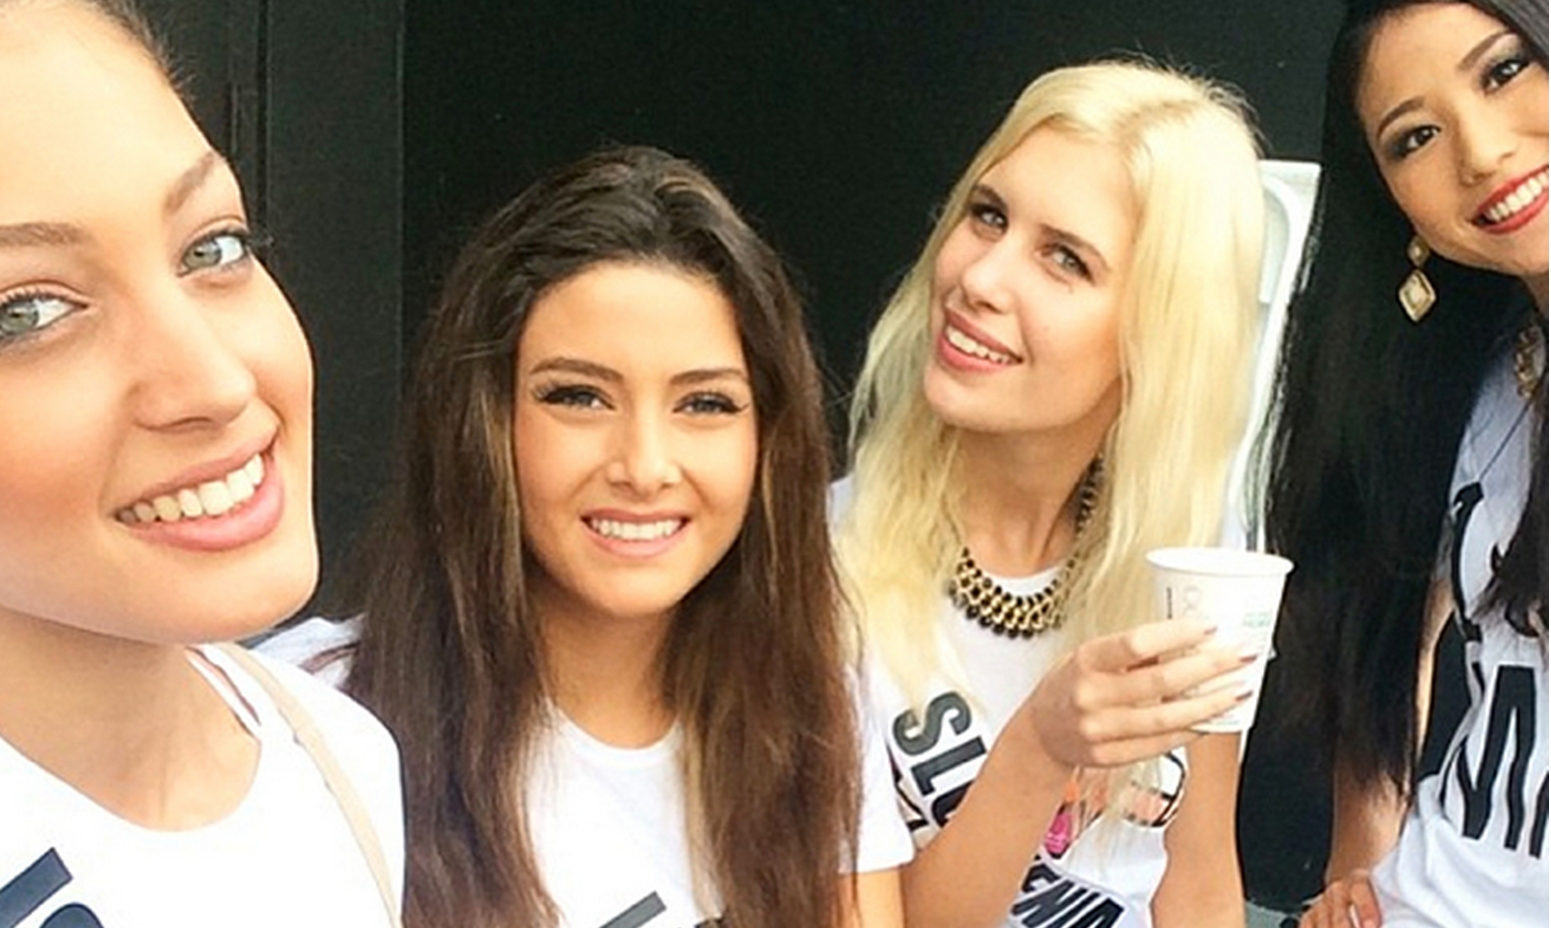 Miss Israel, Miss Lebanon, Miss Slovenia and Miss Japan shown in image together. Image-Instagram